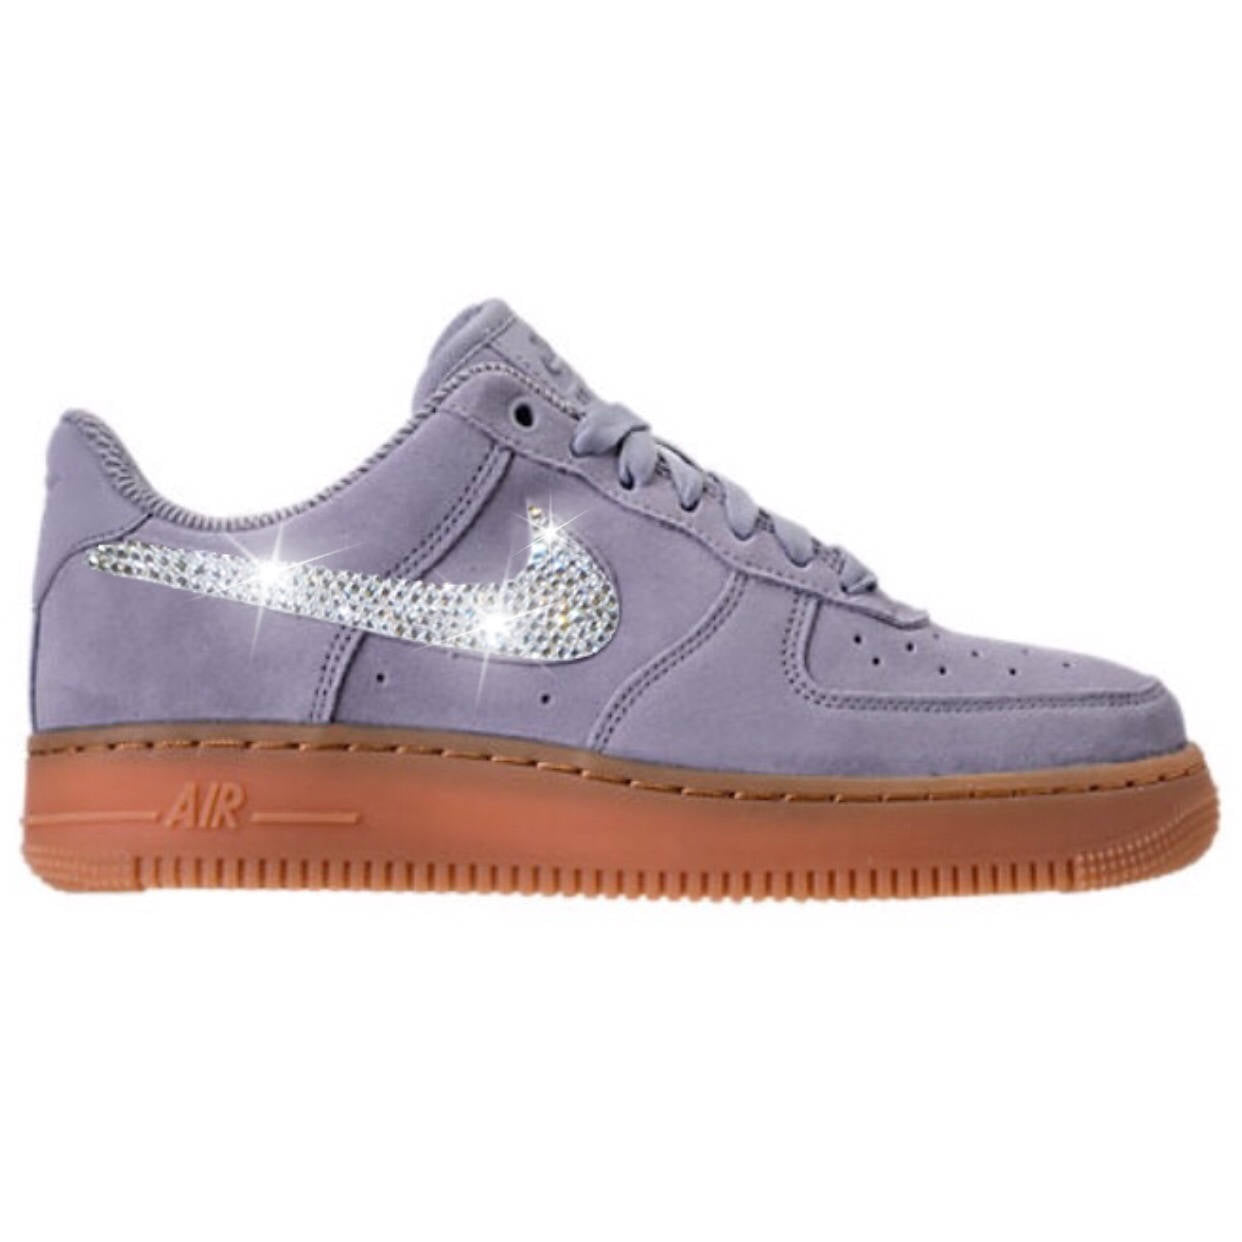 Bling Nike Air Force 1  07 SE with Swarovski Crystals   Glacier Grey    Bedazzled ... ebca5a37d